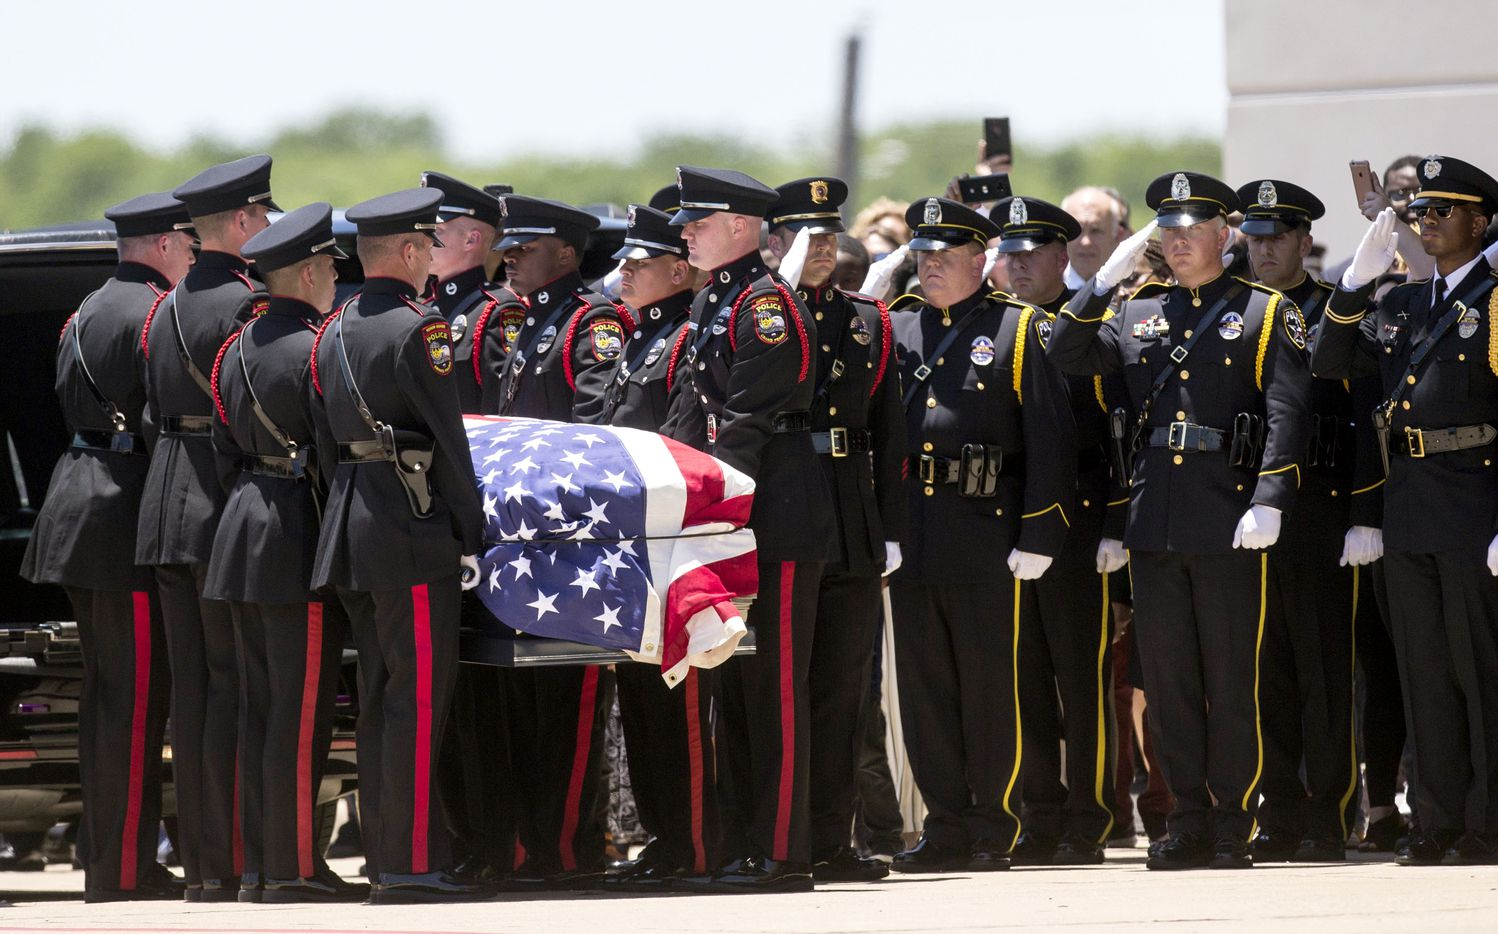 Honor guard members carry the casket Grand Prairie Officer A.J. Castaneda during funeral services at The Potter's House on Thursday, June 13, 2019 in Dallas. Castaneda was killed June 7 while on the George Bush Turnpike.